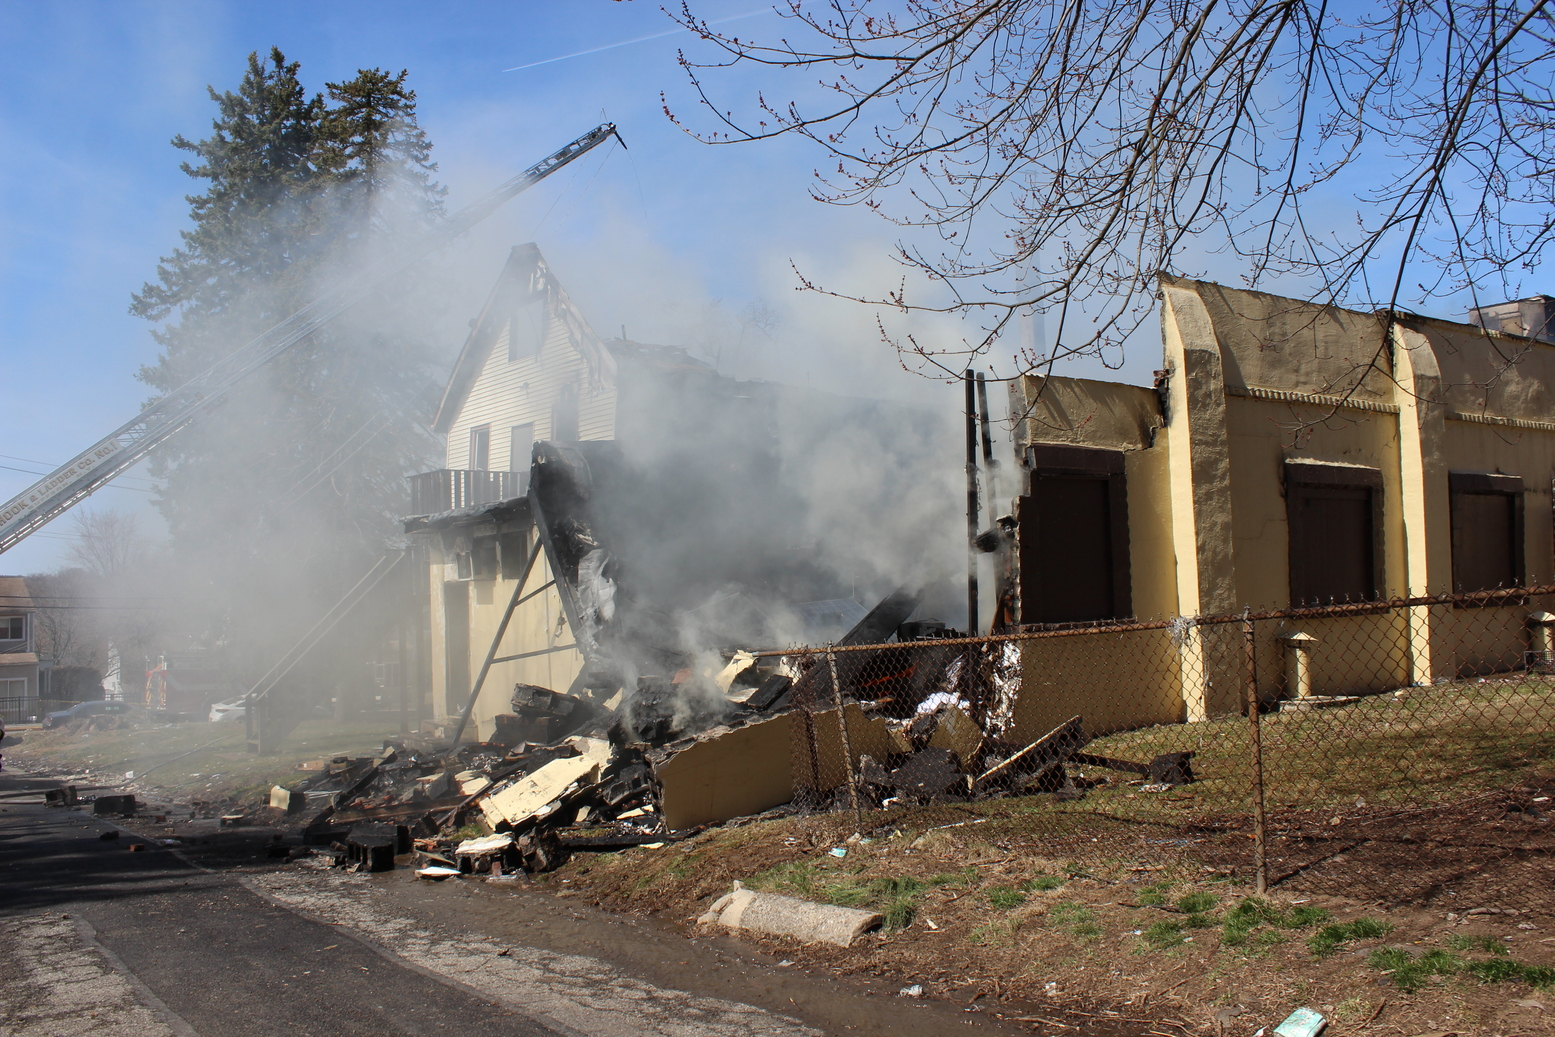 Four Suspects Plead Not Guilty in Evergreen Fire Case